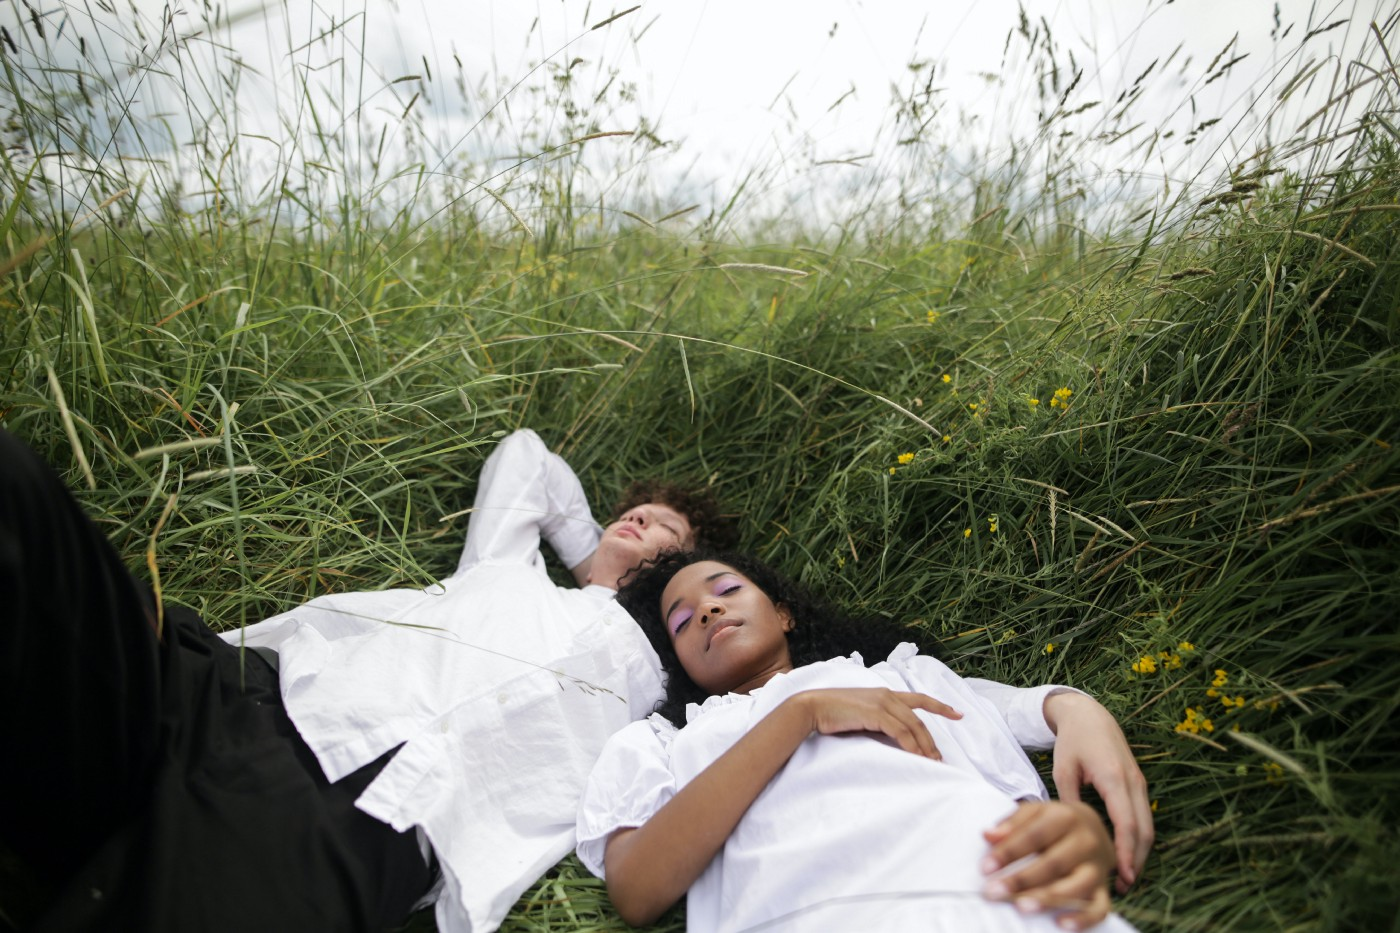 Two individuals laying in a bed of grass together with their eyes closed wearing white T-shirts